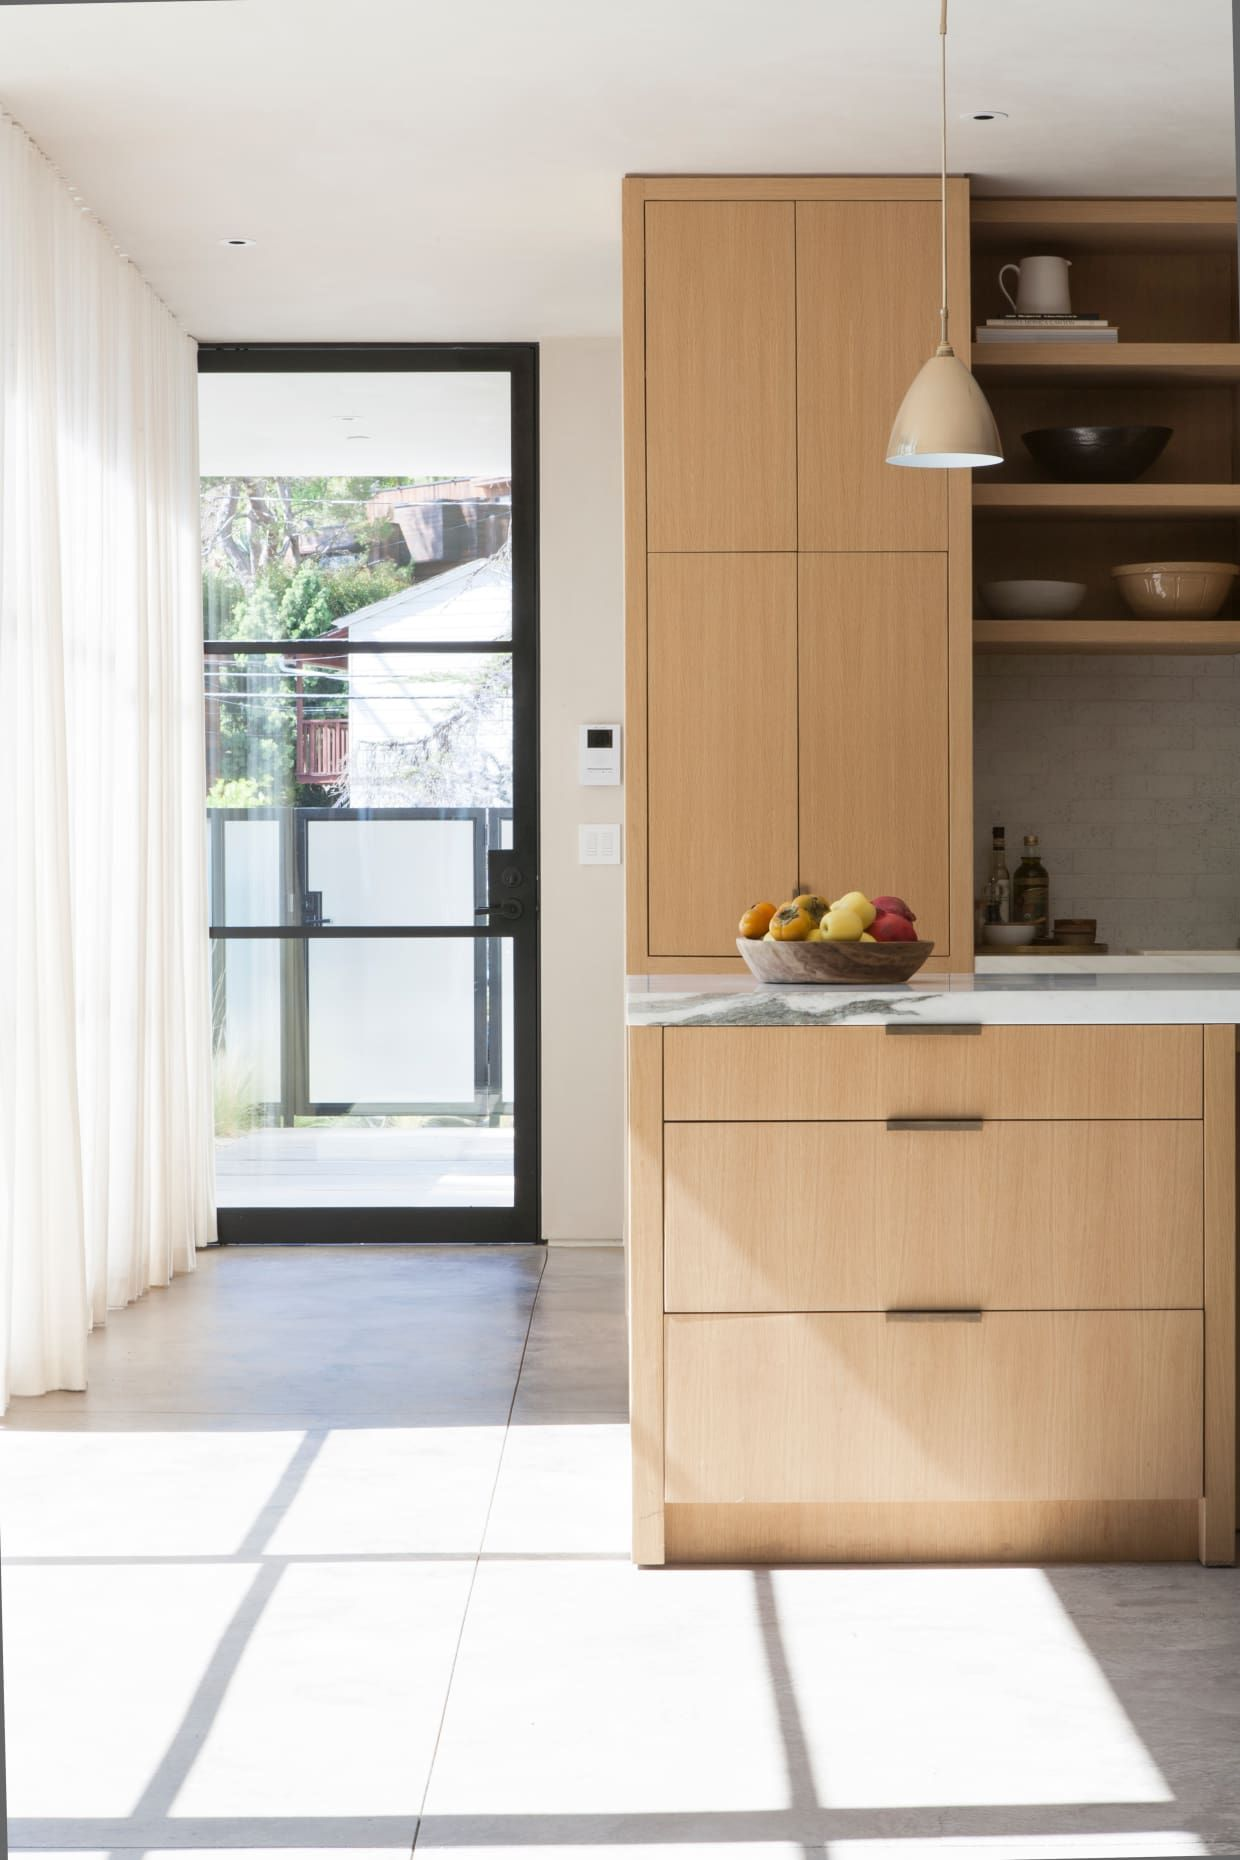 Easygoing Vibes Fill This Stunning Los Angeles Home Light Wood Kitchens Modern Kitchen Design Disc Interiors